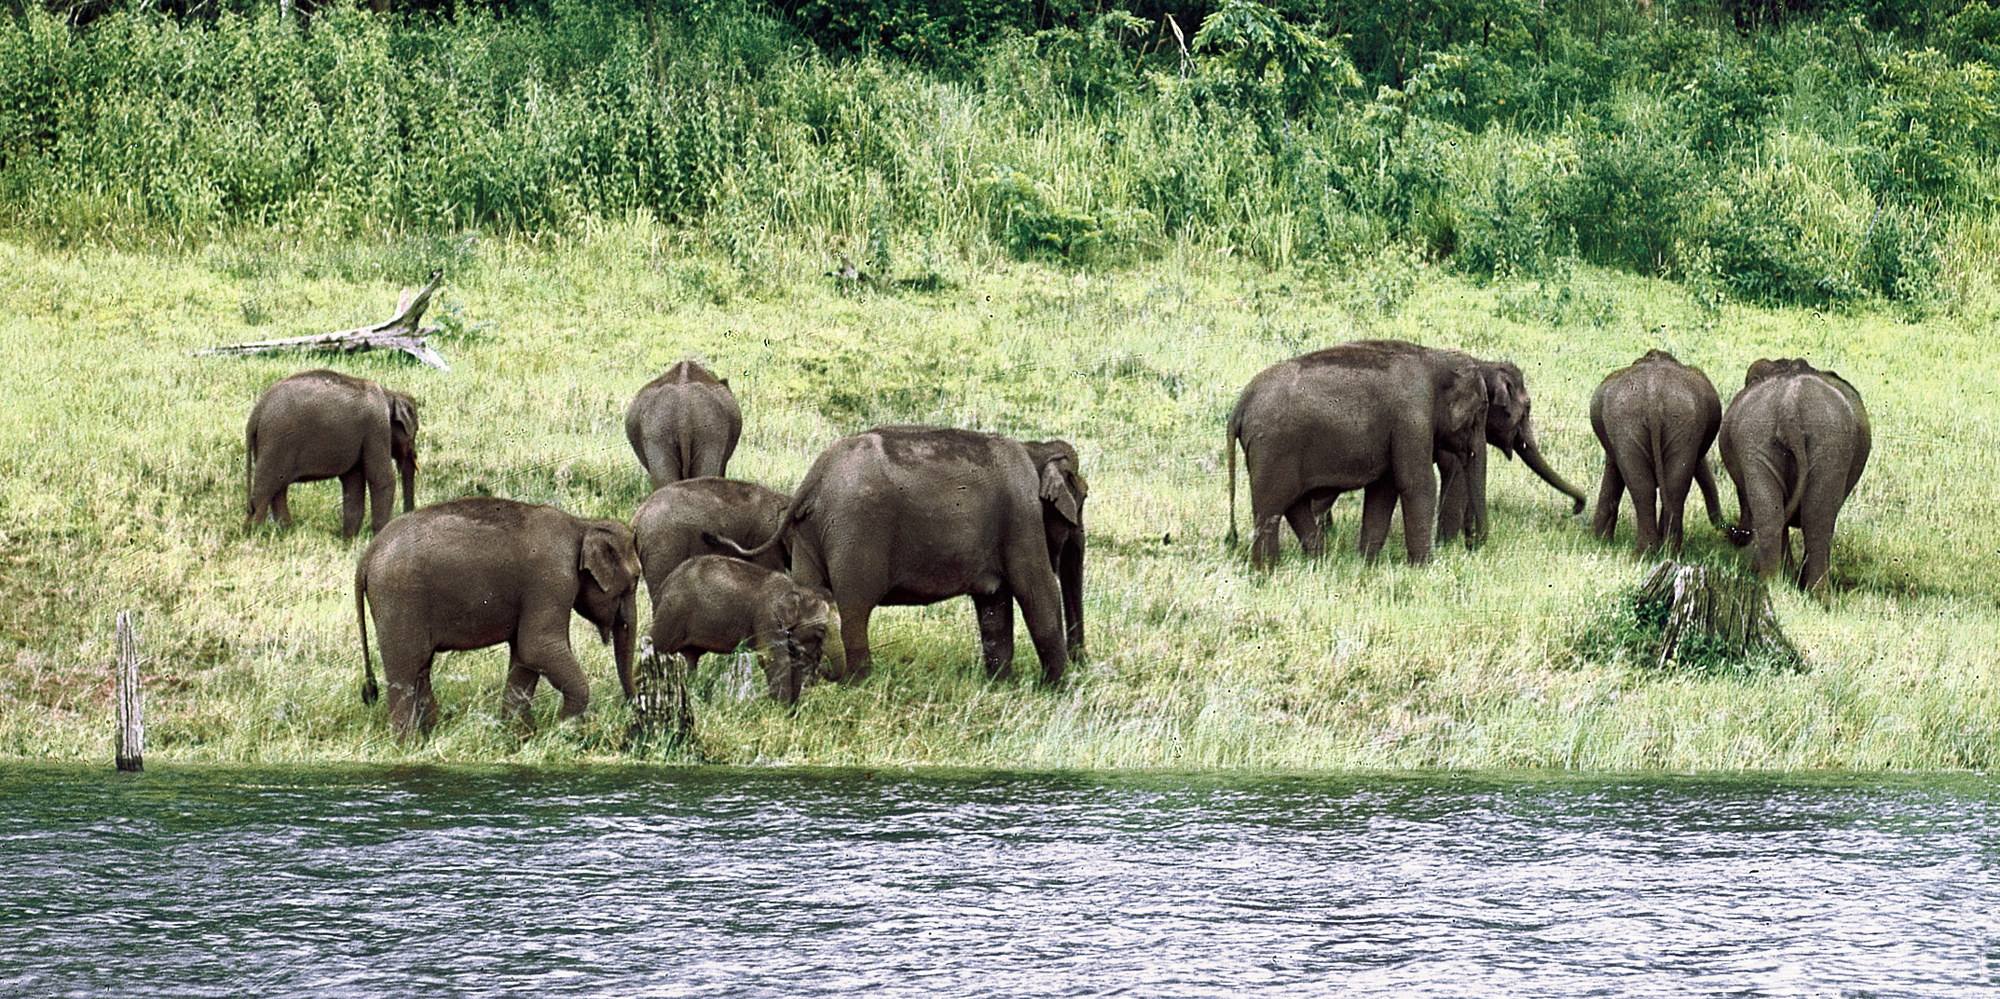 <strong>Periyar - 1</strong> - Periyar National Park and Wildlife Sanctuary is a protected area in the districts of Idukki and Pathanamthitta in Kerala, south India.